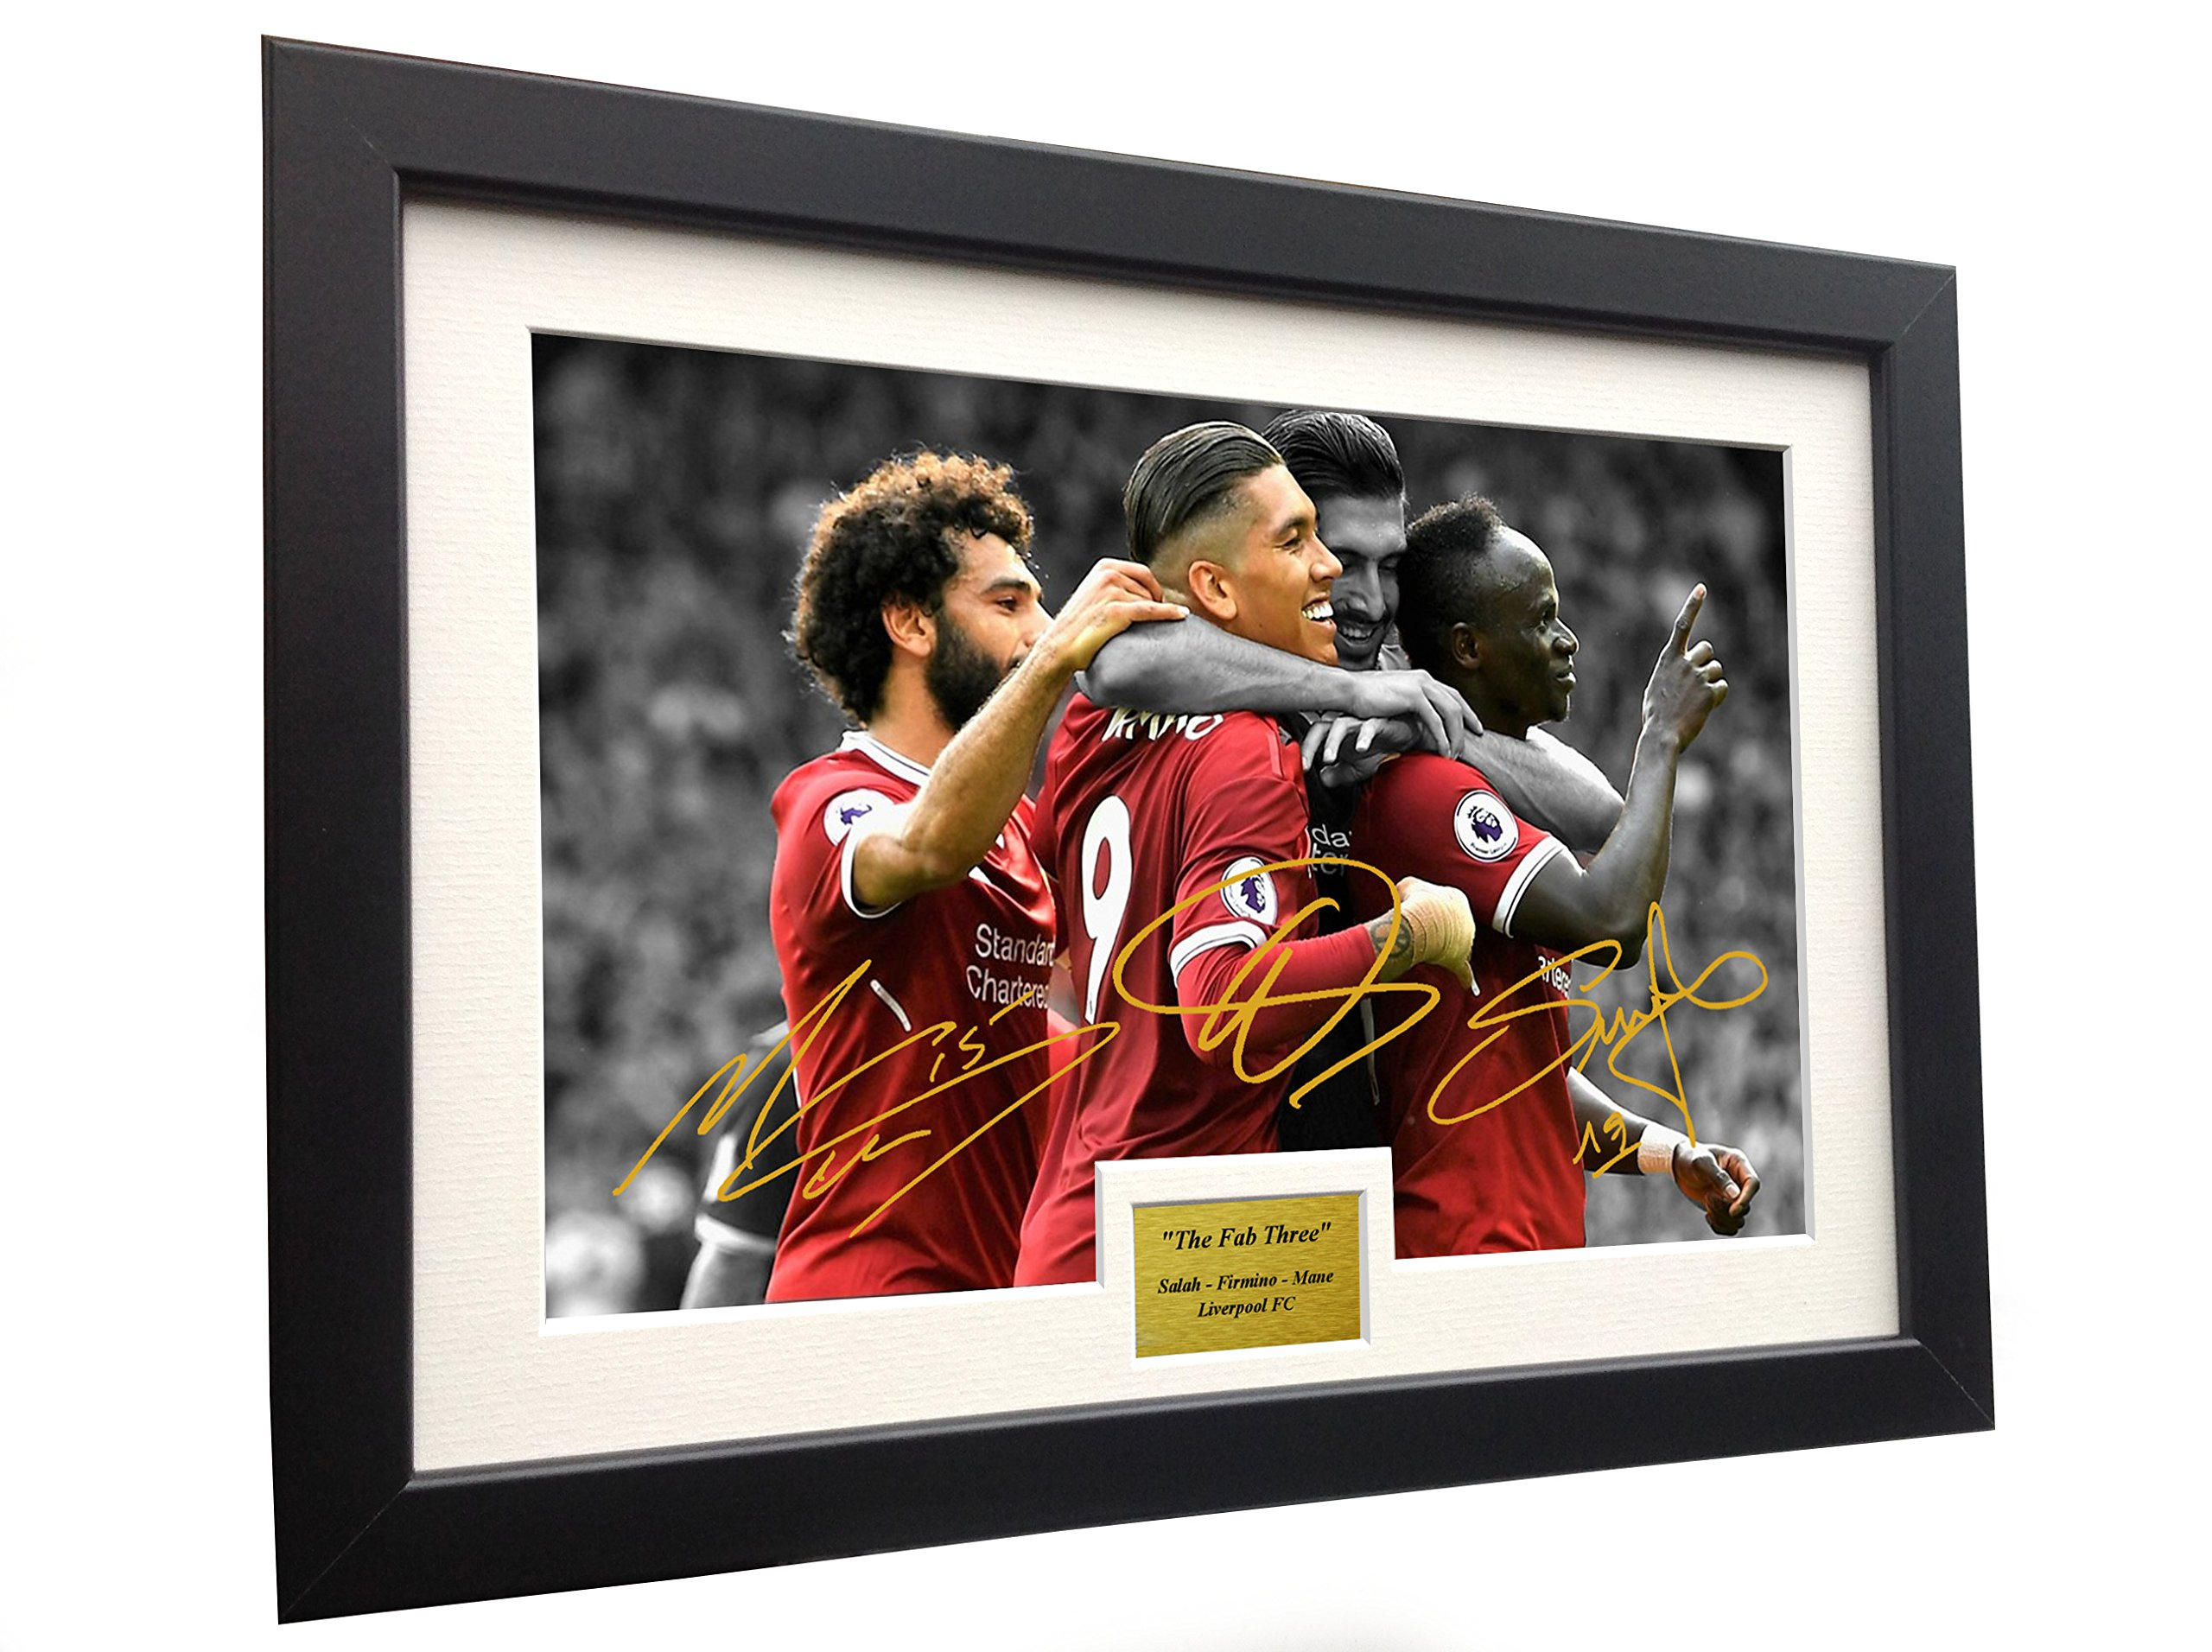 FAB THREE - Roberto Firmino Mohamed Mo Salah Sadio Mane 12x8 A4 Signed Liverpool FC - Autographed Photo Photograph Picture Frame Gift Soccer by Kitbags & Lockers